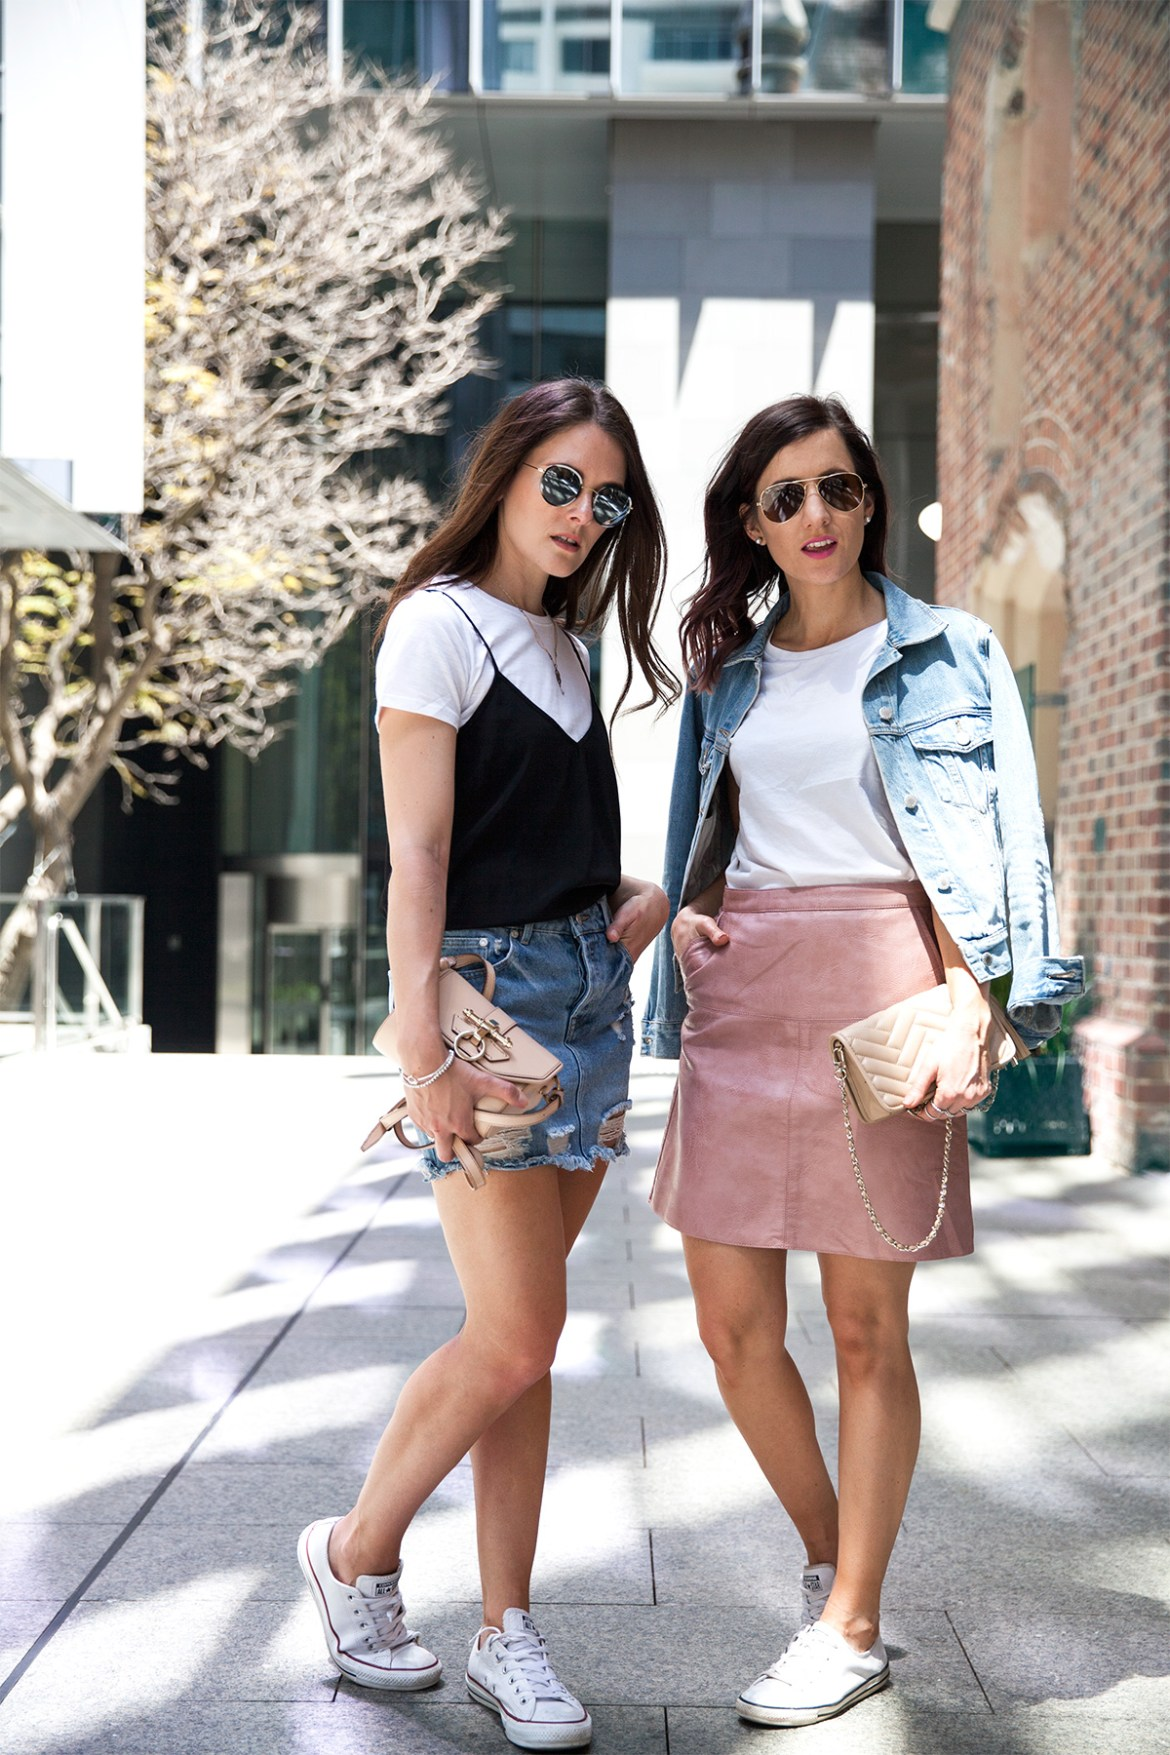 reasons why friendships end Save your essays here so you can  among the most common reasons for the ending of friendships are  two friends which obviously leads to a friendships end.